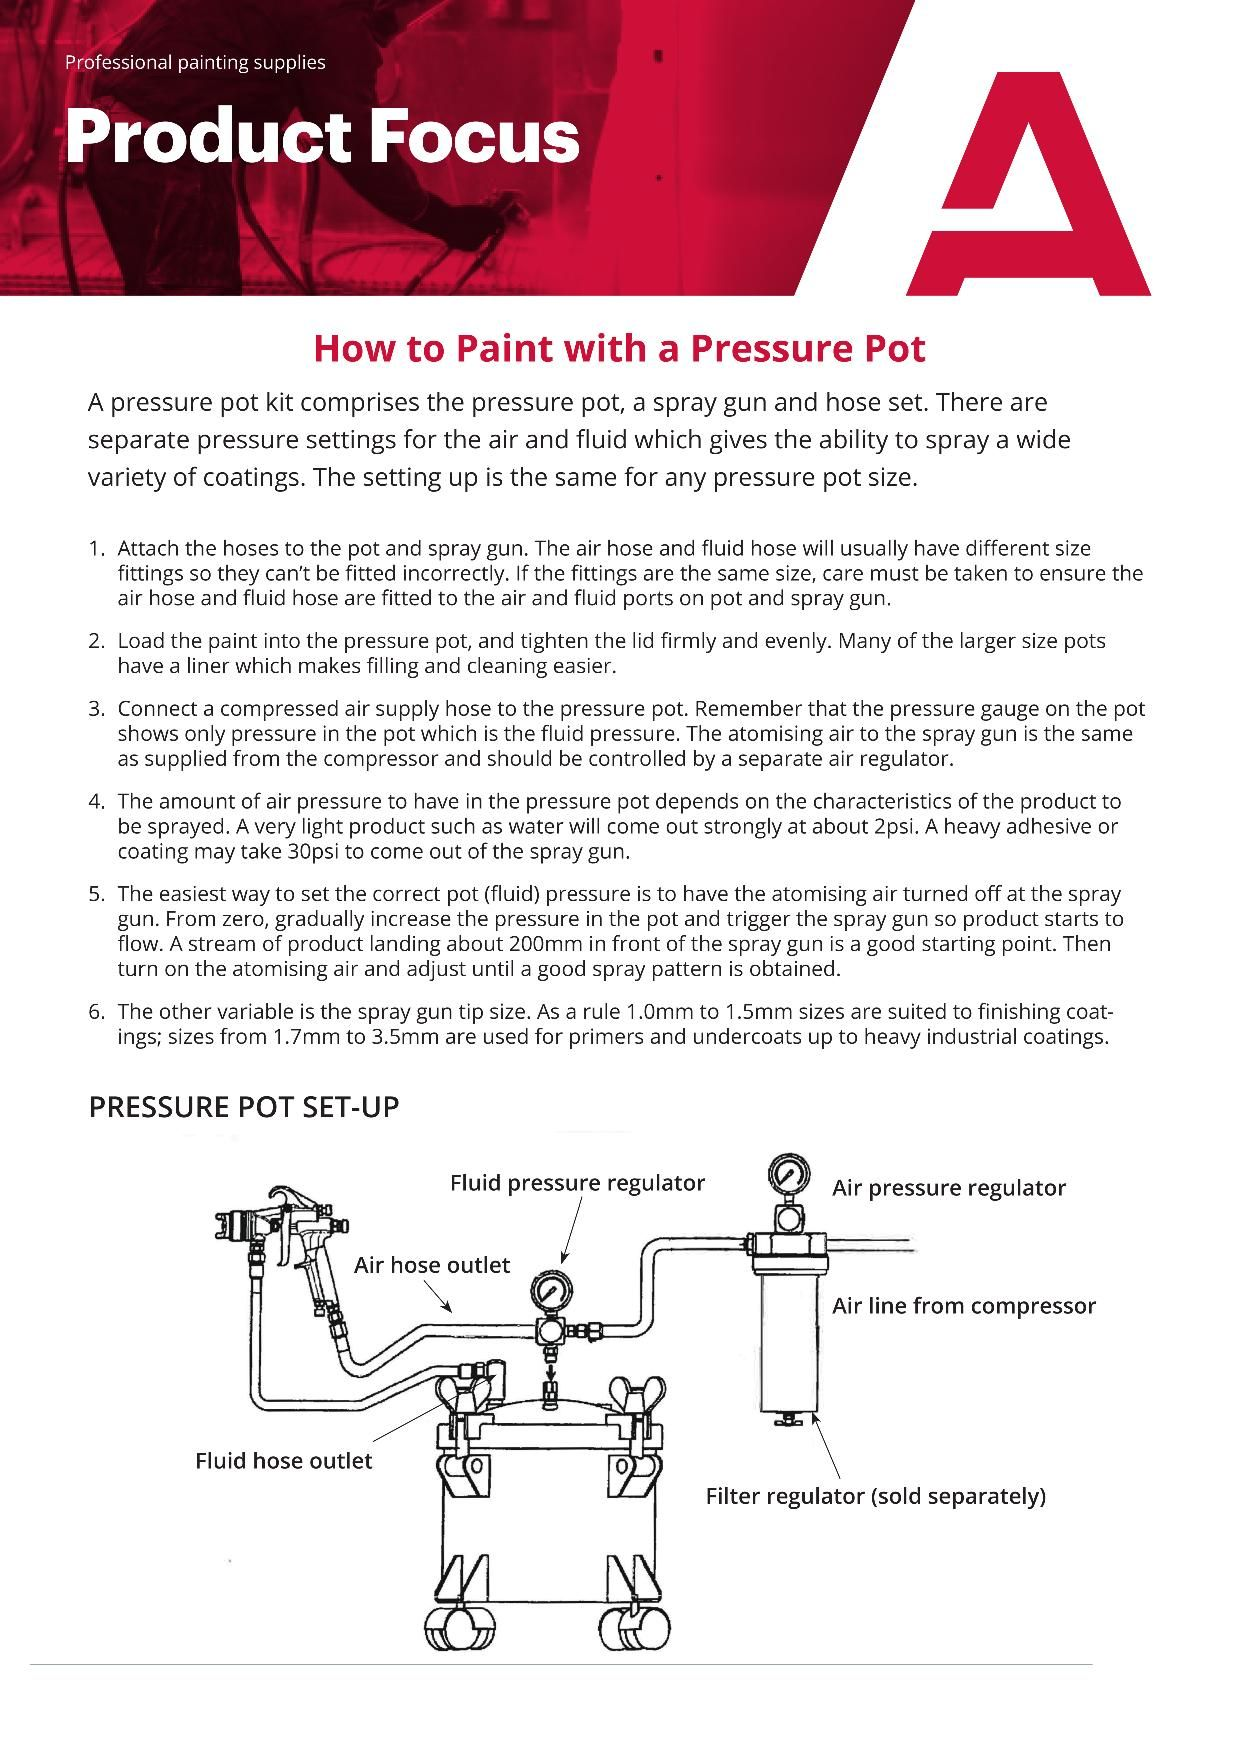 How to Paint with a Pressure Pot